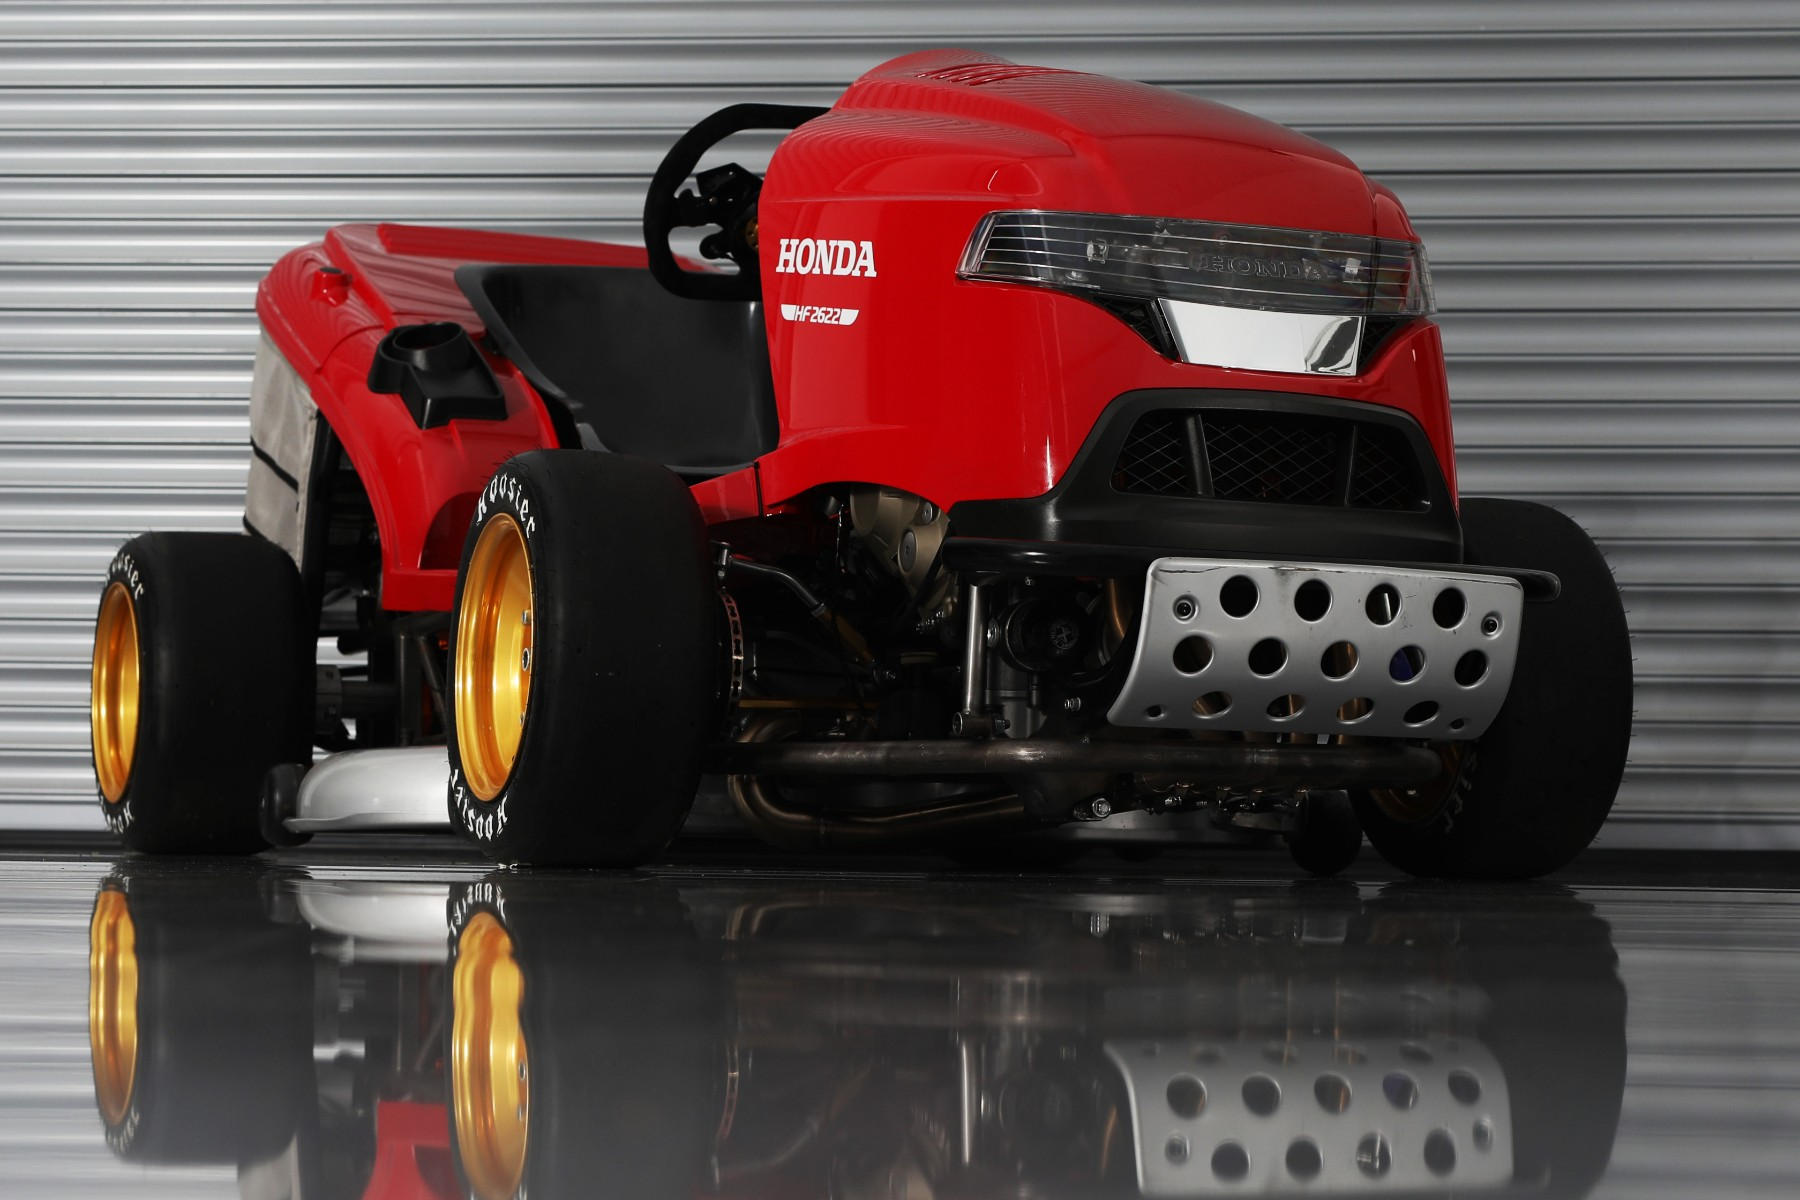 Honda Mean Mower 4